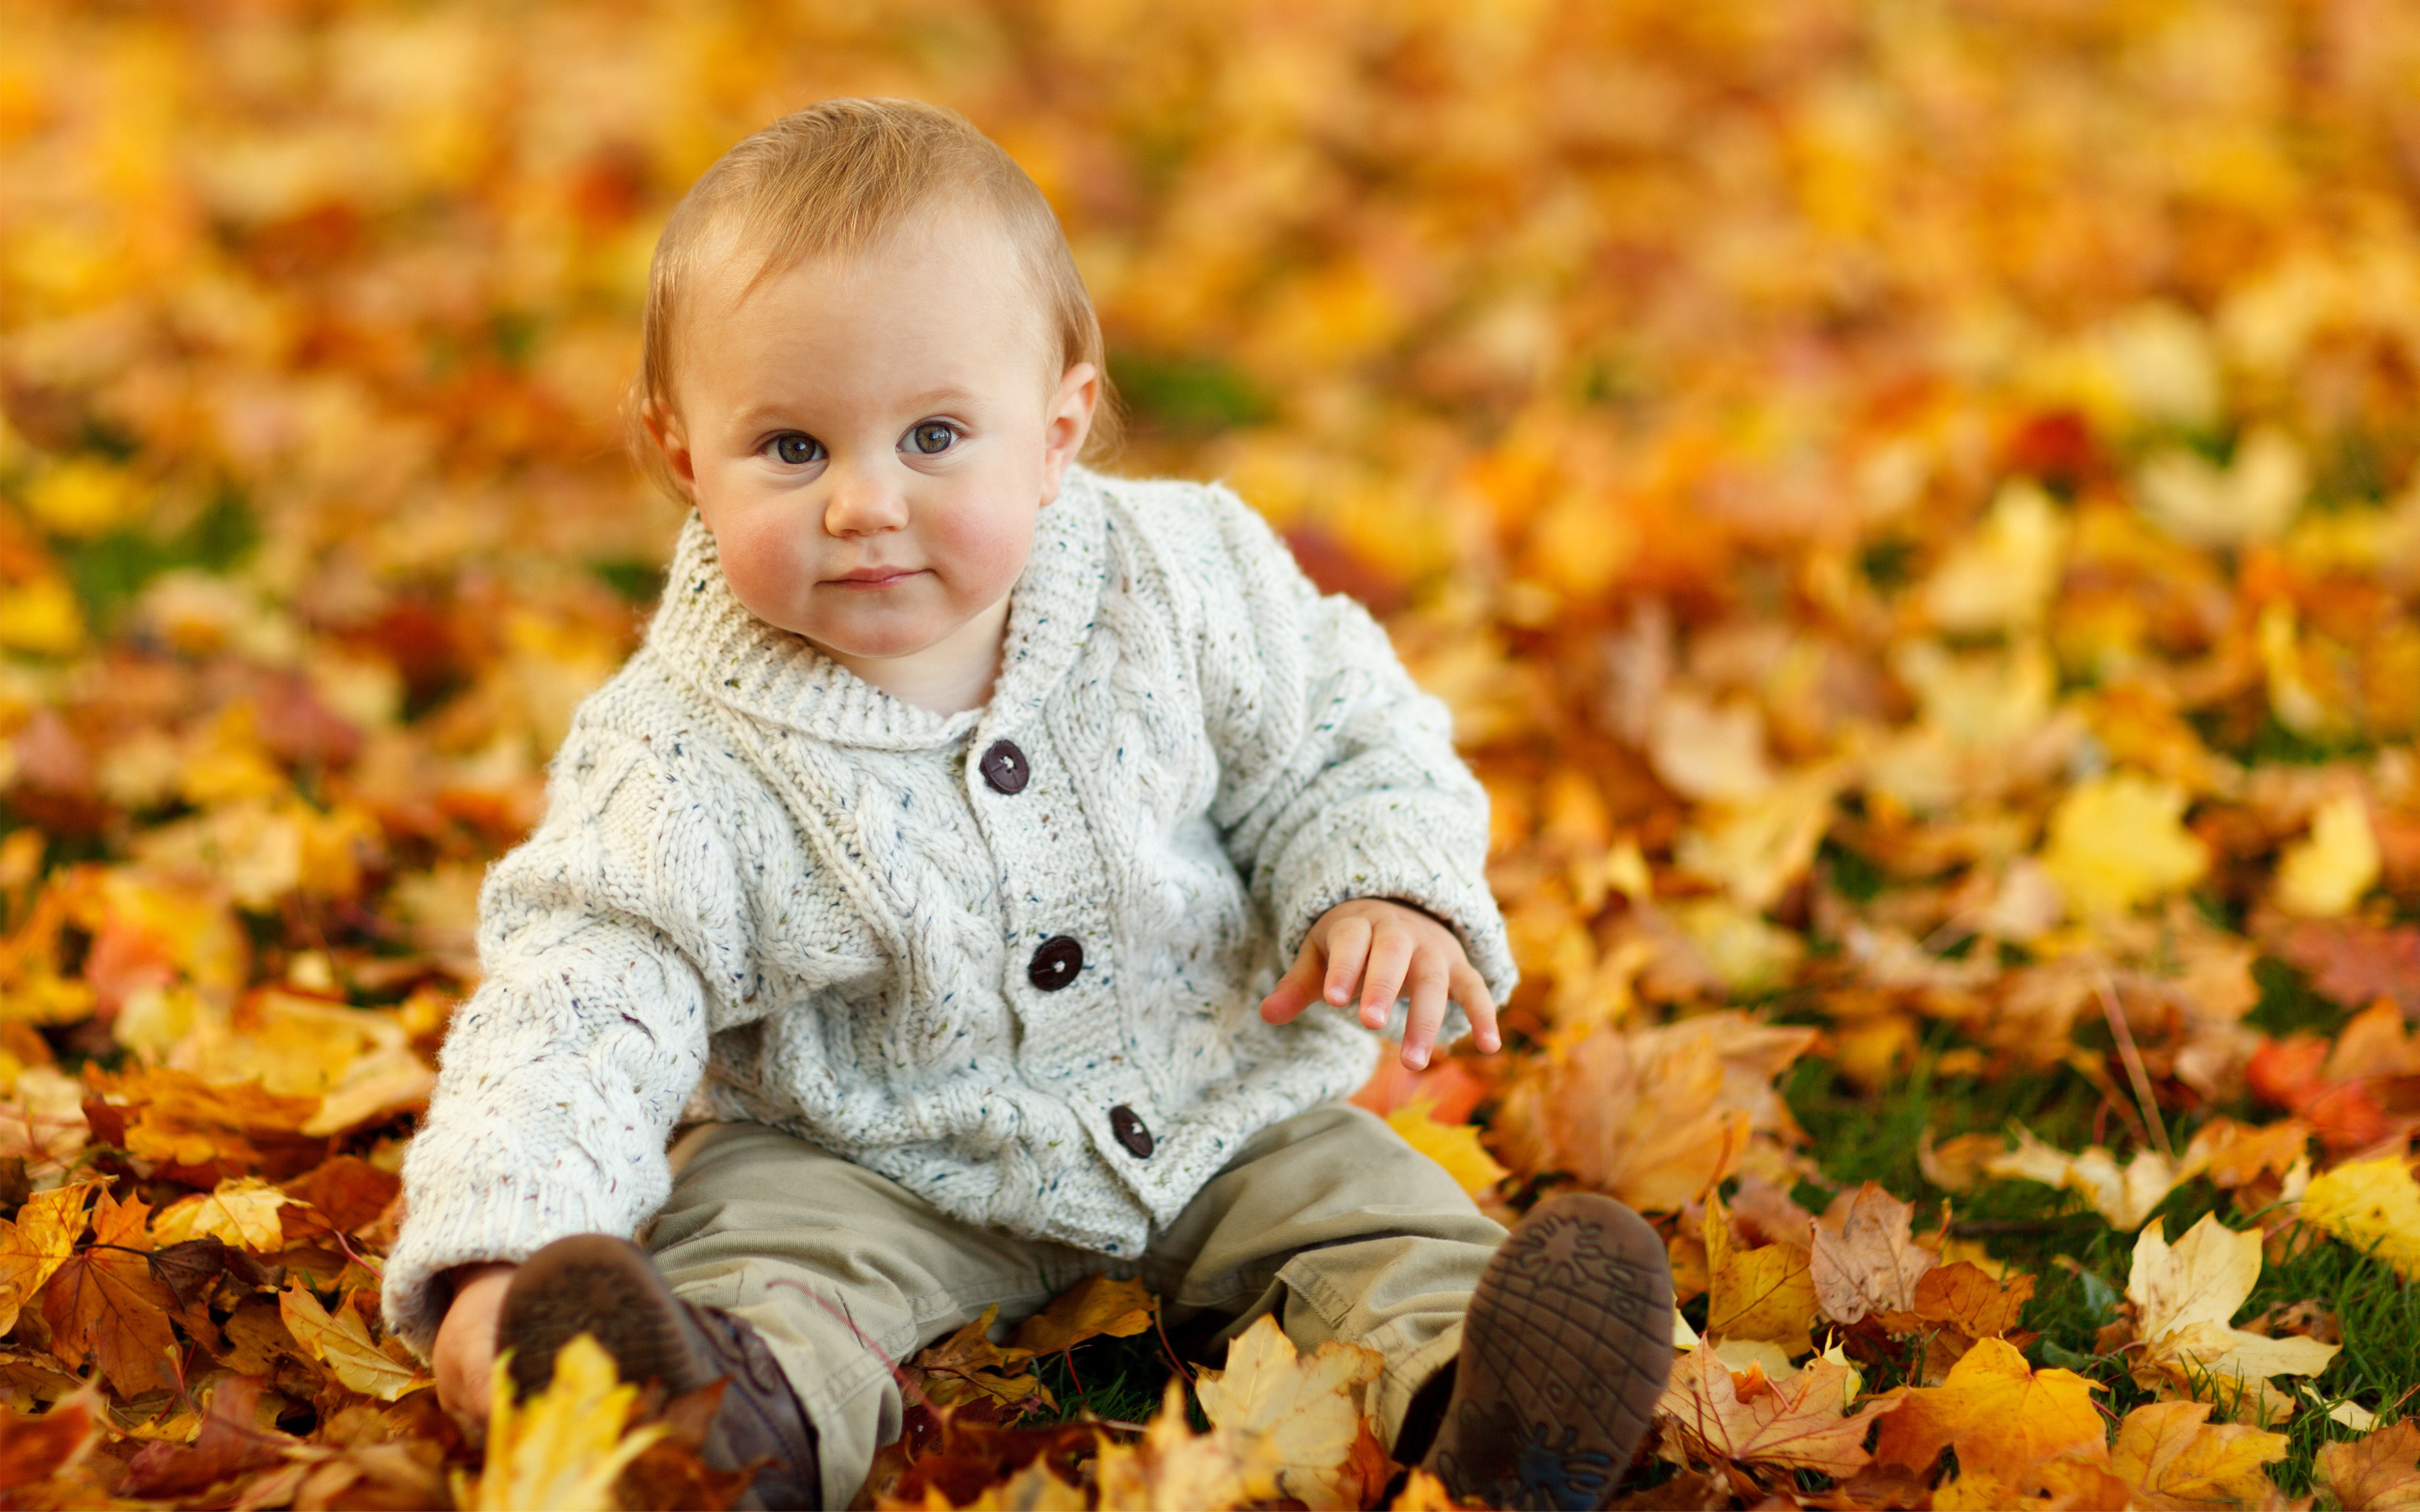 Cute Baby Boy Autumn Leaves106106793 - Cute Baby Boy Autumn Leaves - Leaves, Flowers, Cute, Baby, Autumn